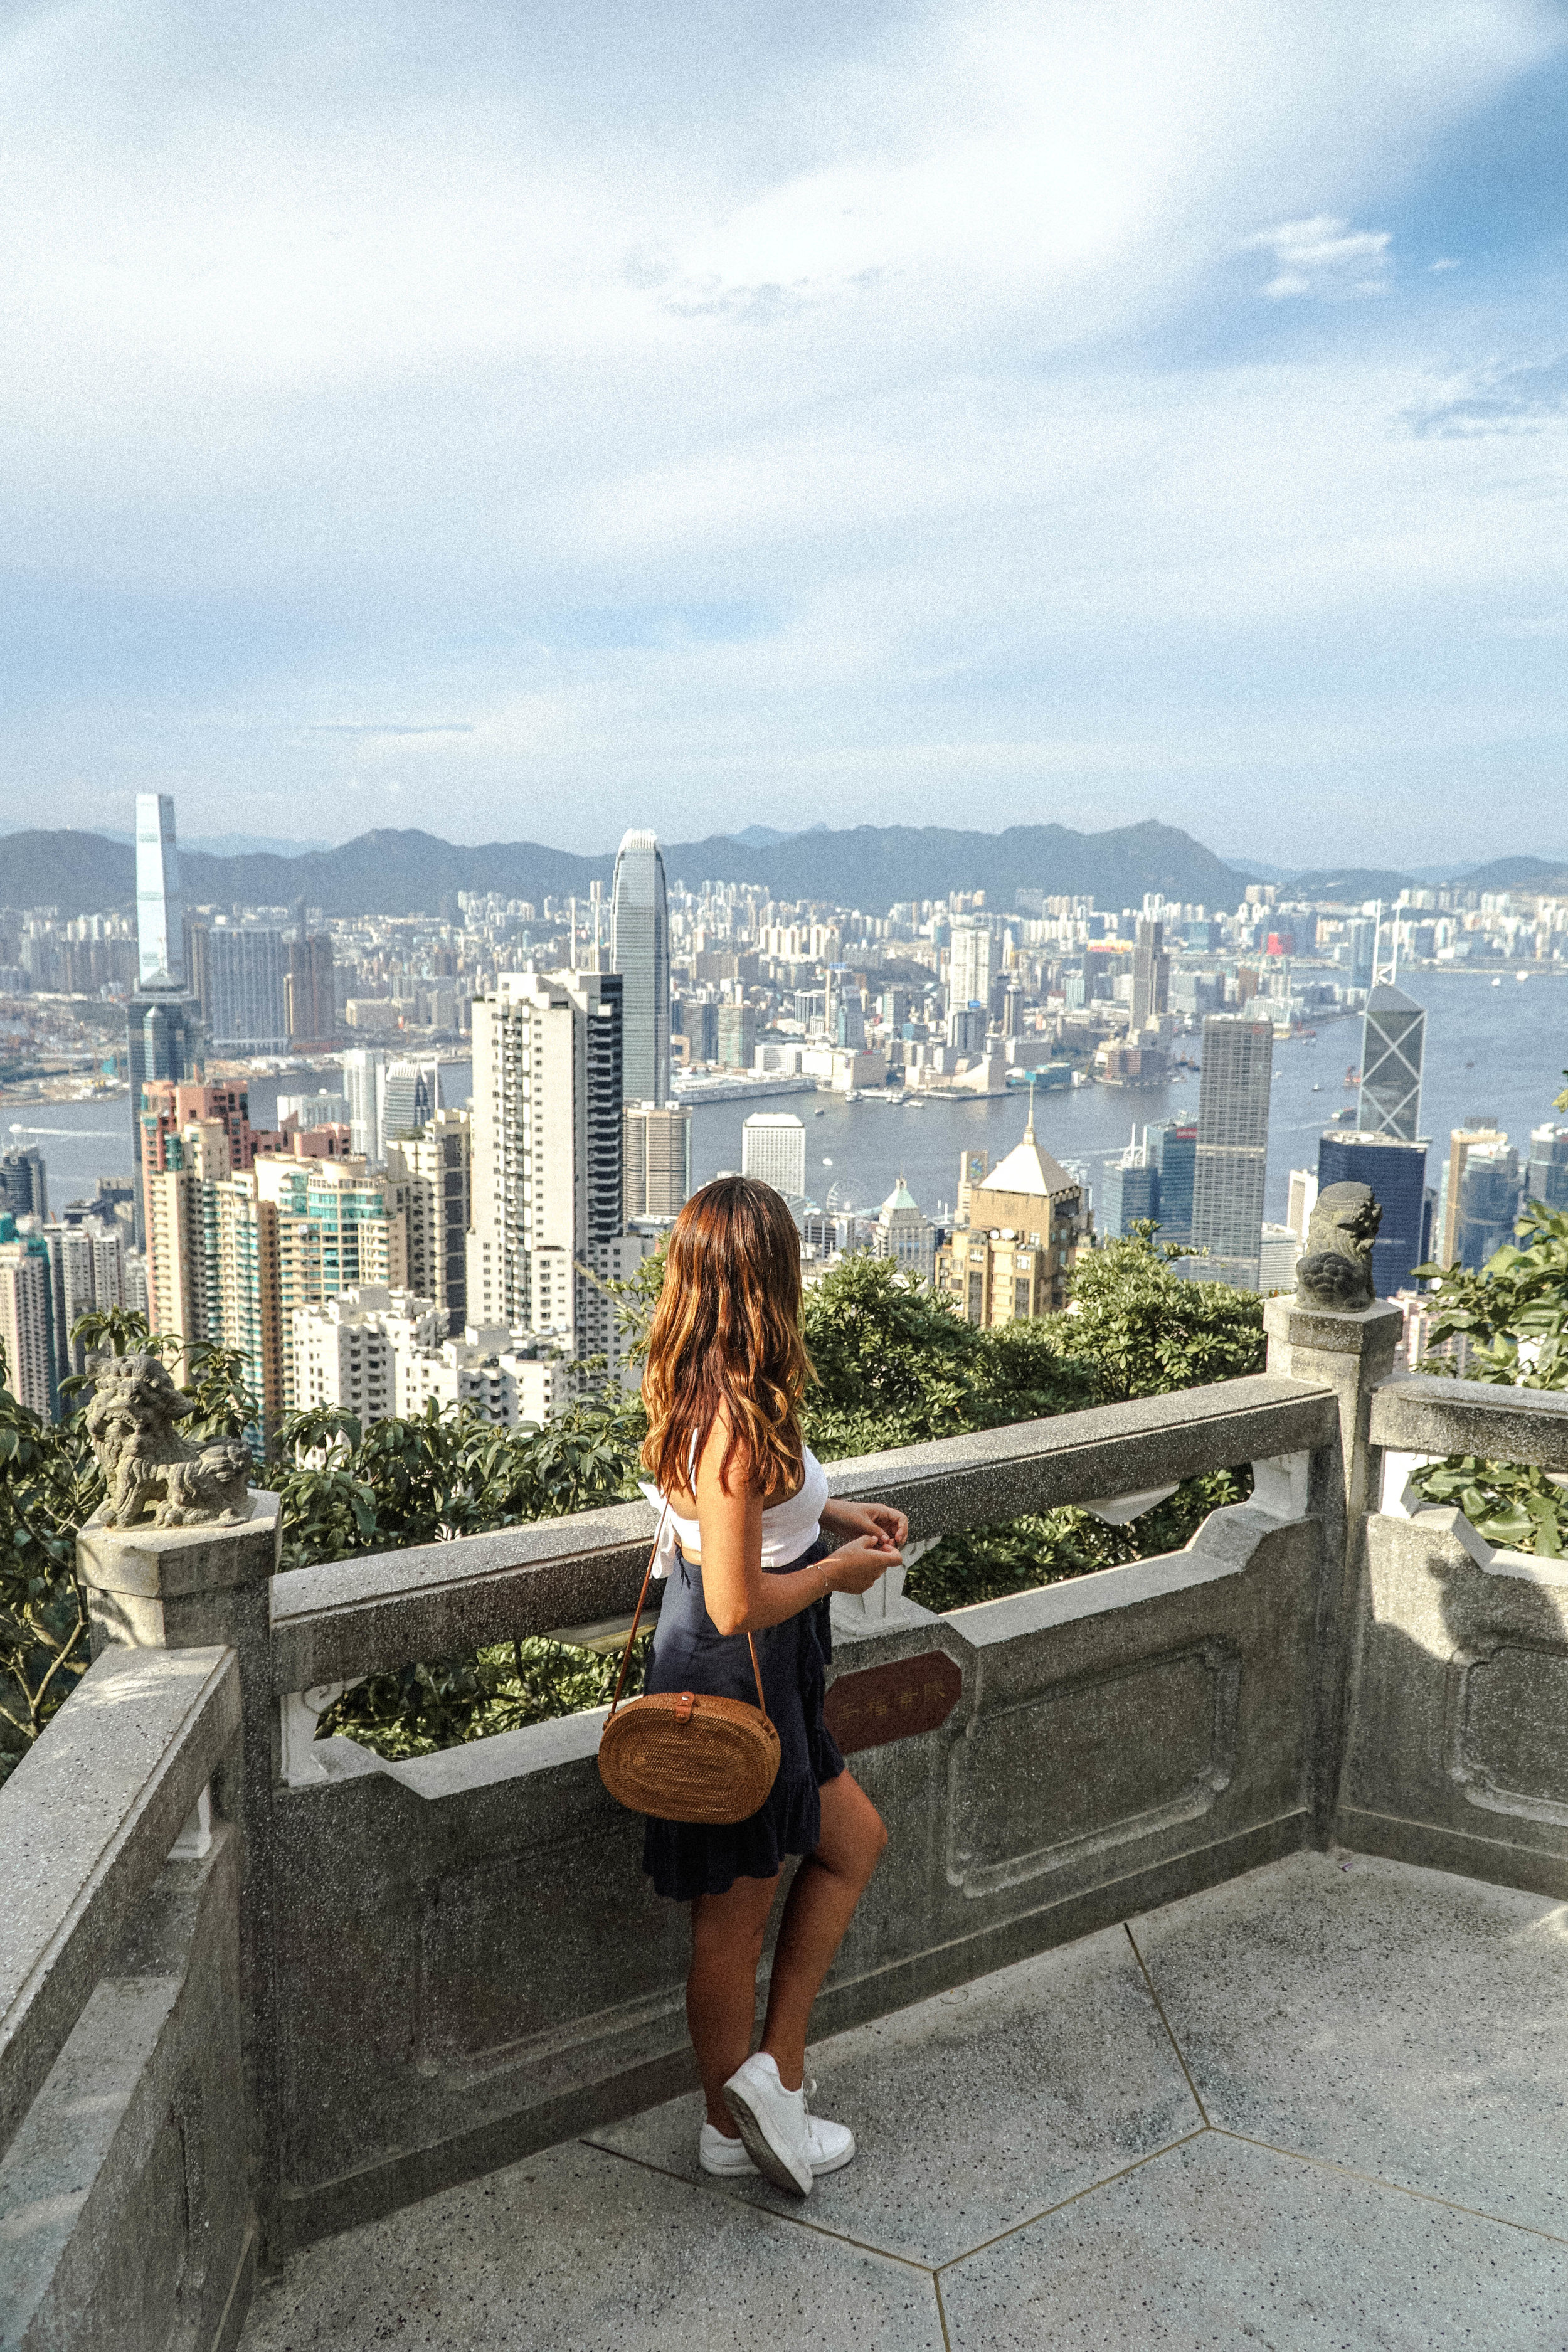 For a panoramic view, head to Victoria's Peak. I would recommend staying for sun down as the city lights take your breath away!